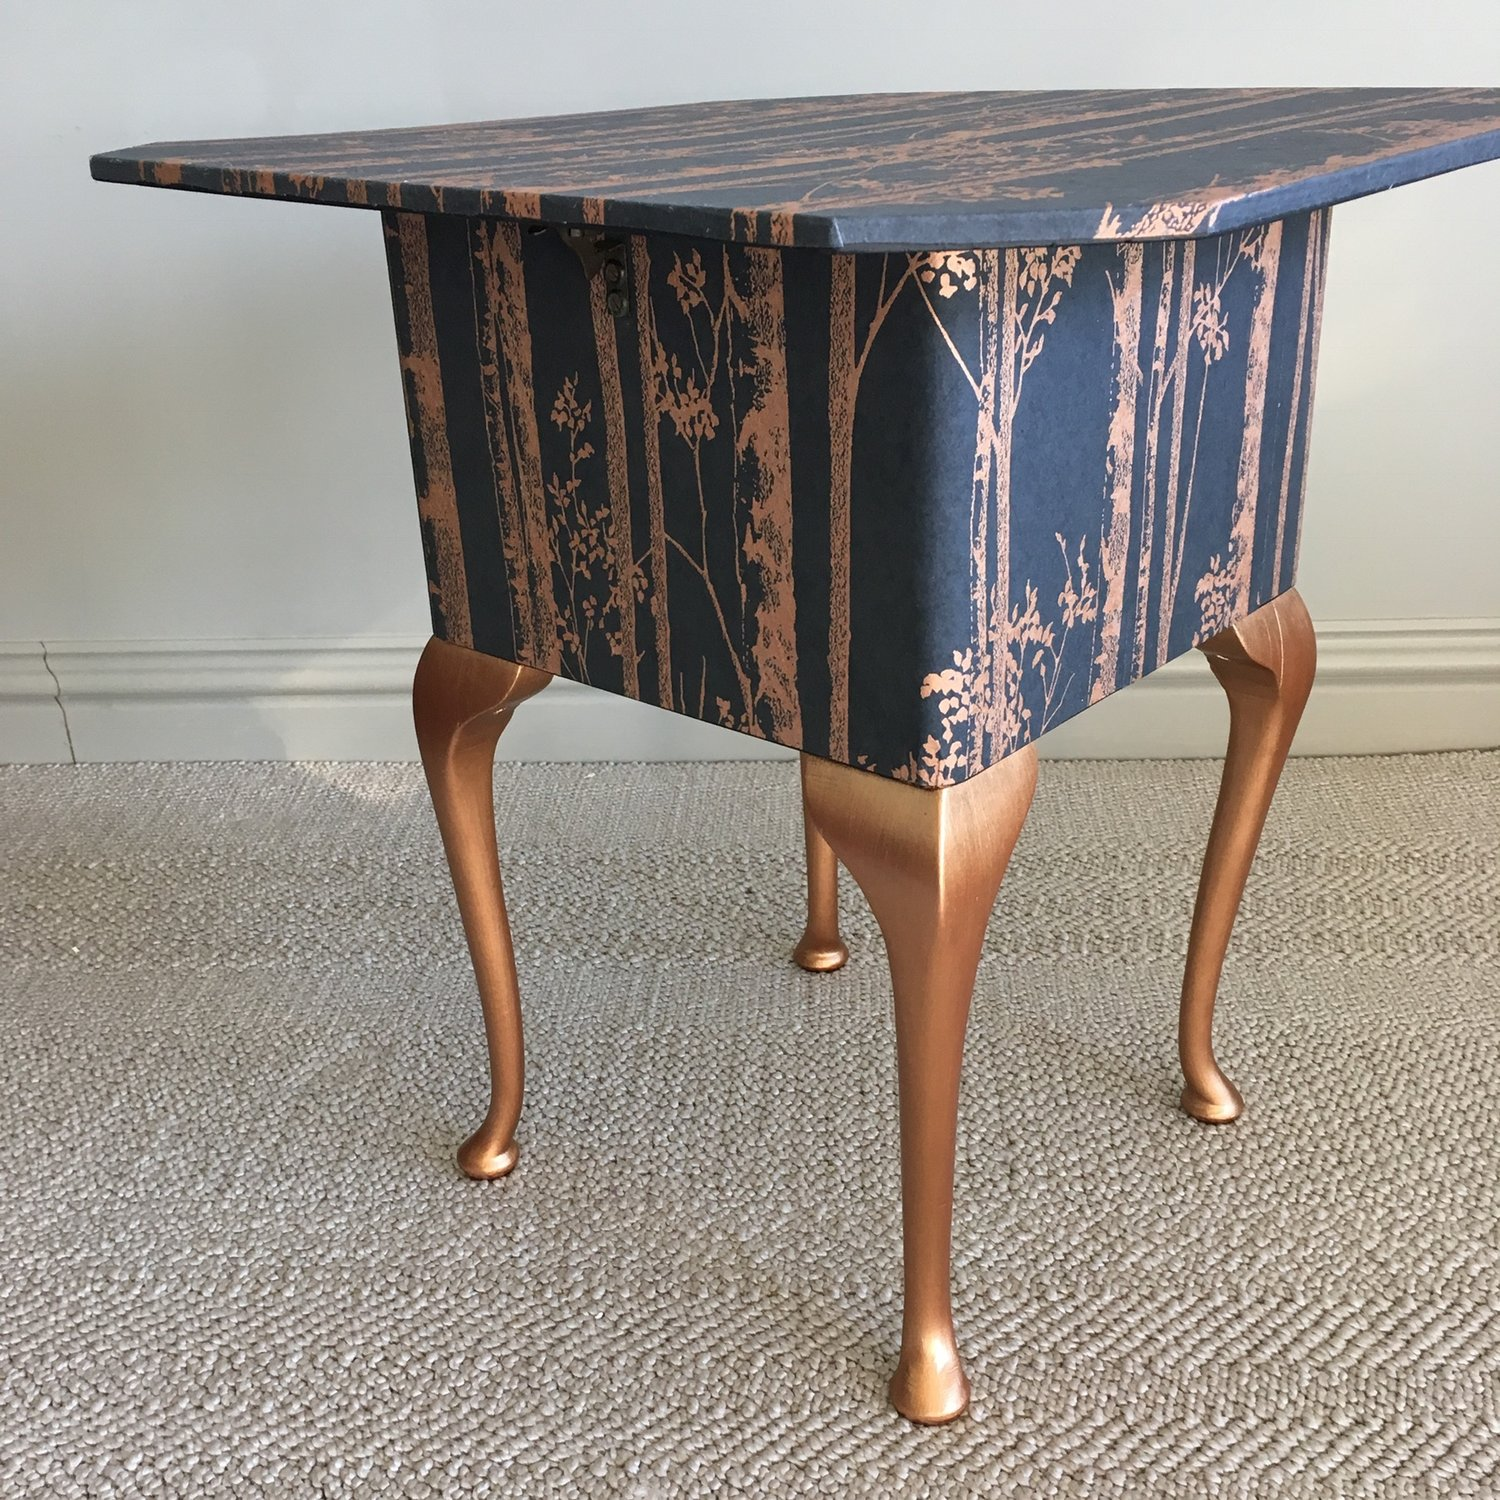 Copper Trees Vintage Sewing Box Table - A Vintage sewing Box & Table, Découpaged in Copper Trees paper sealed with protective dead flat varnish.